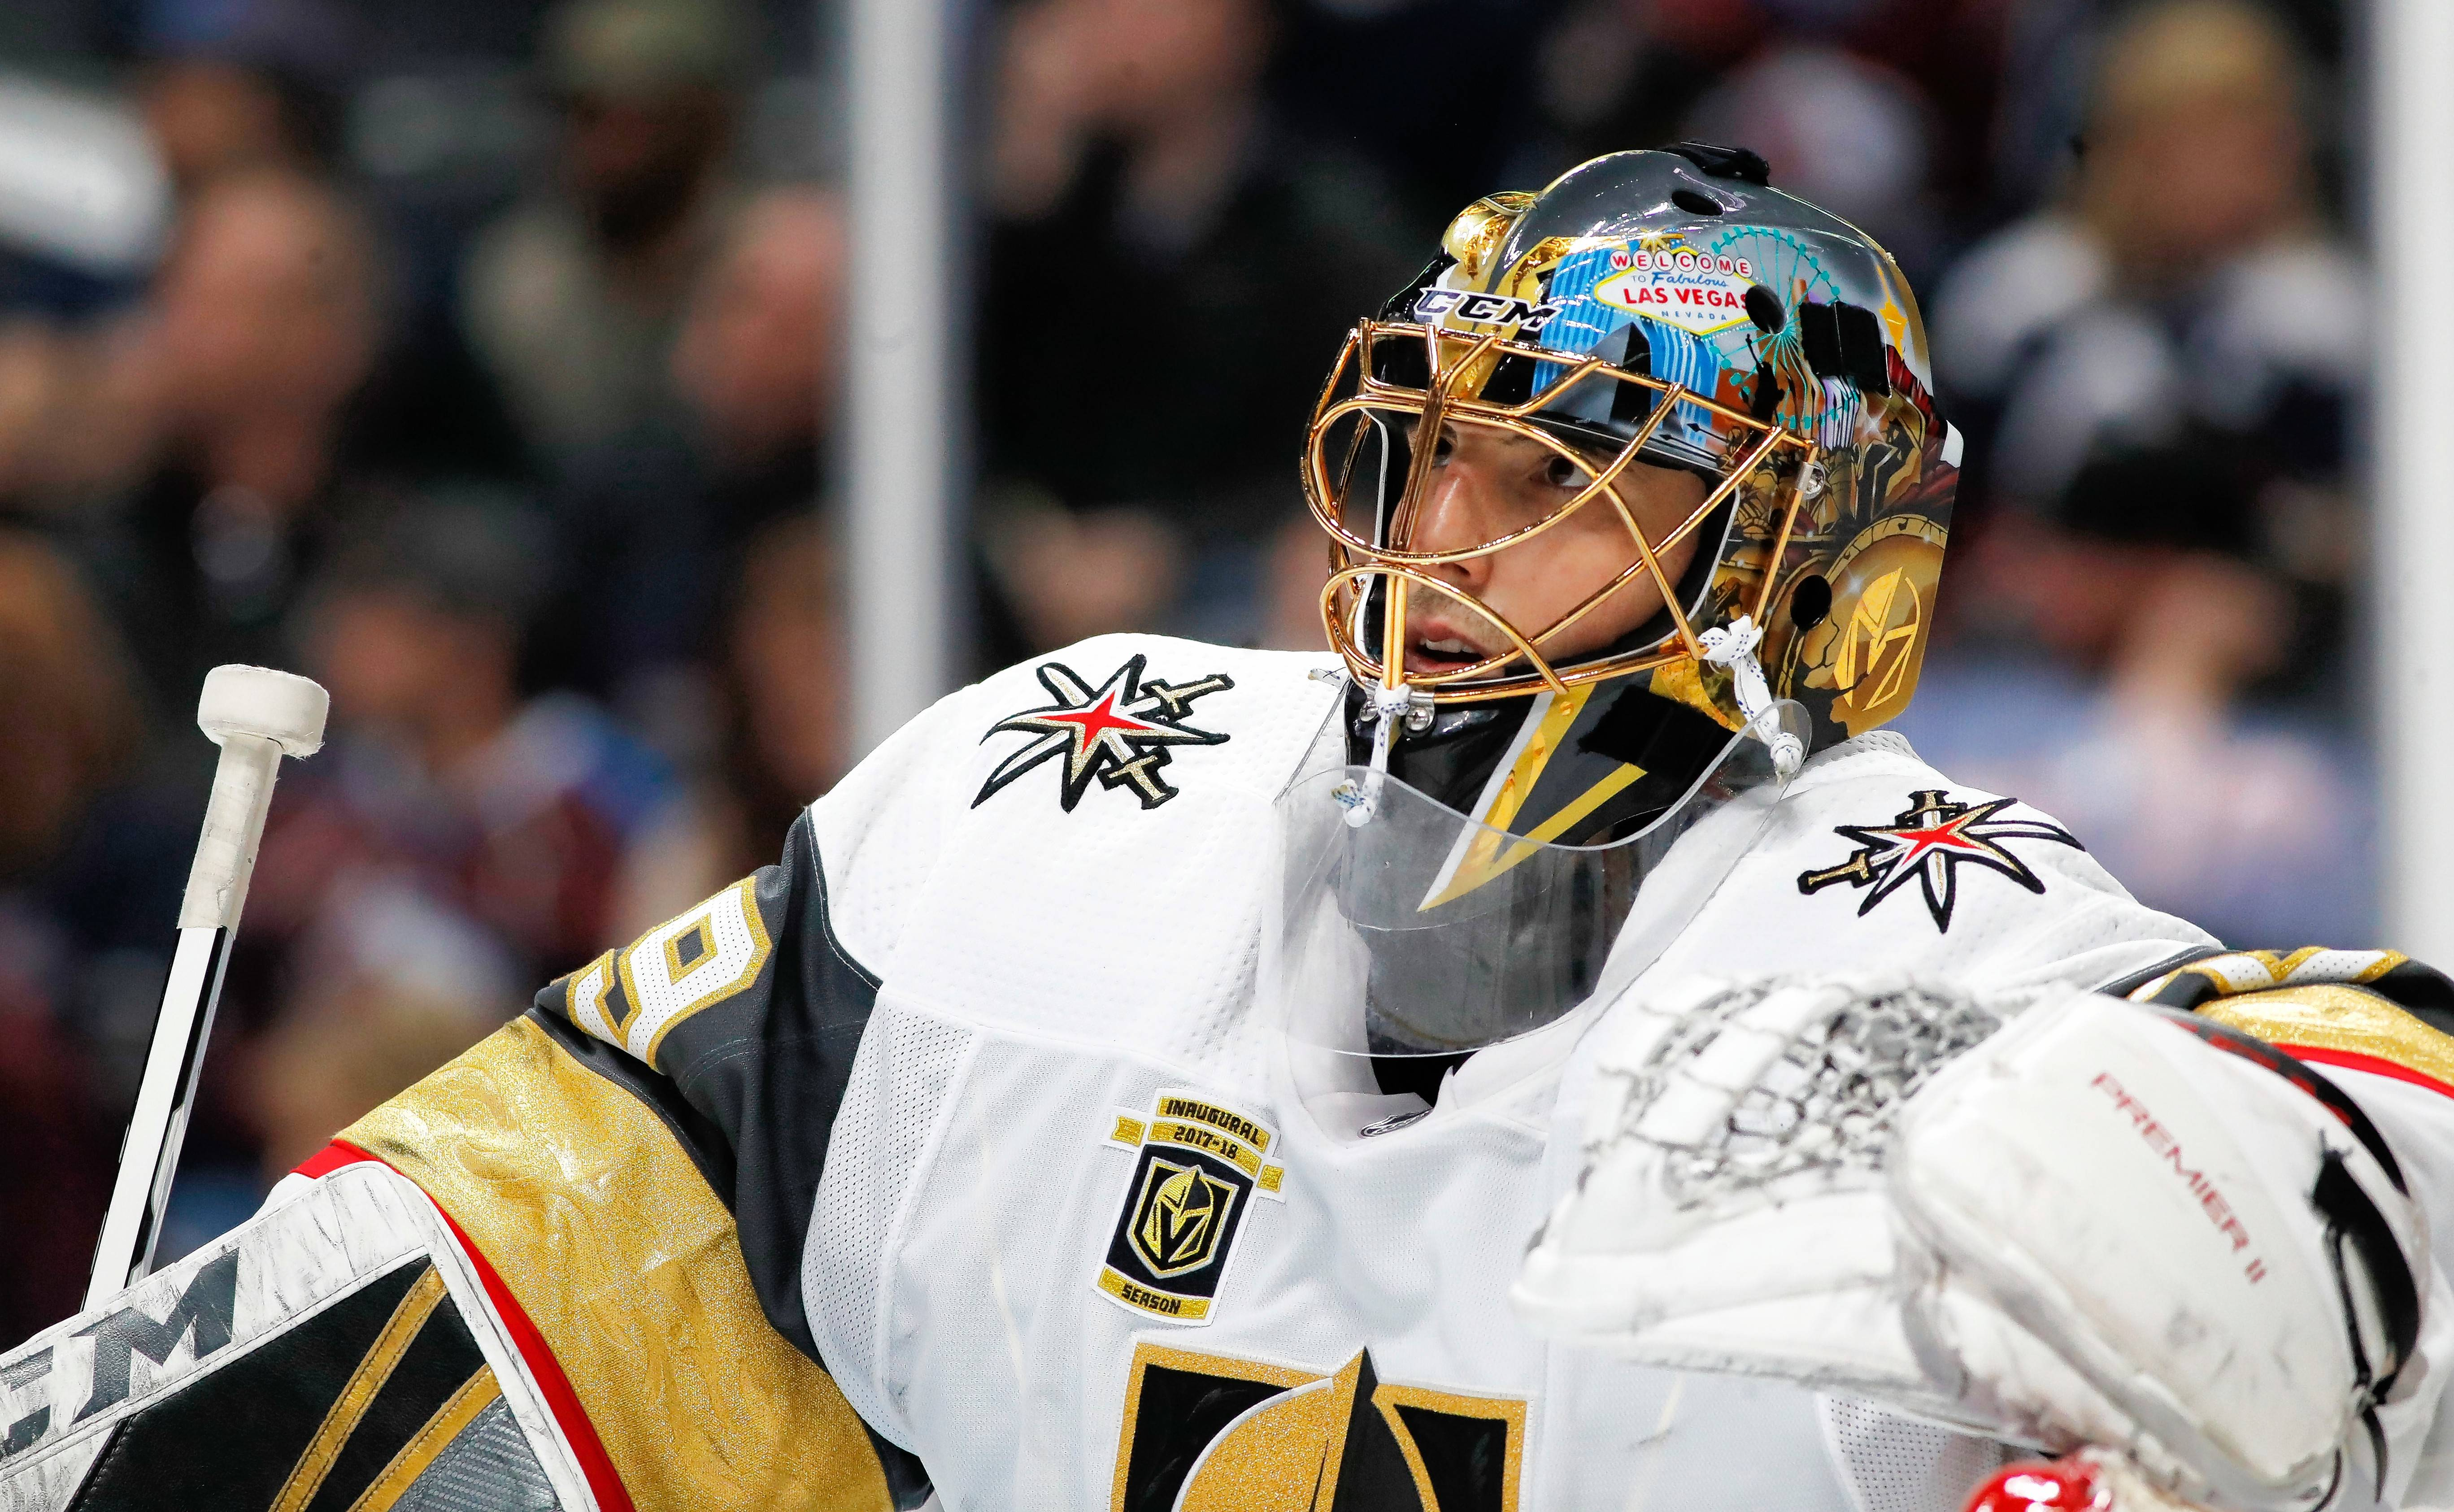 Vegas Golden Knights goaltender Marc-Andre Fleury leans on the top of the net during a time out against the Colorado Avalanche in the third period of an NHL hockey game Saturday, March 24, 2018, in Denver. Colorado won 2-1 in a shootout. (AP Photo/David Zalubowski)